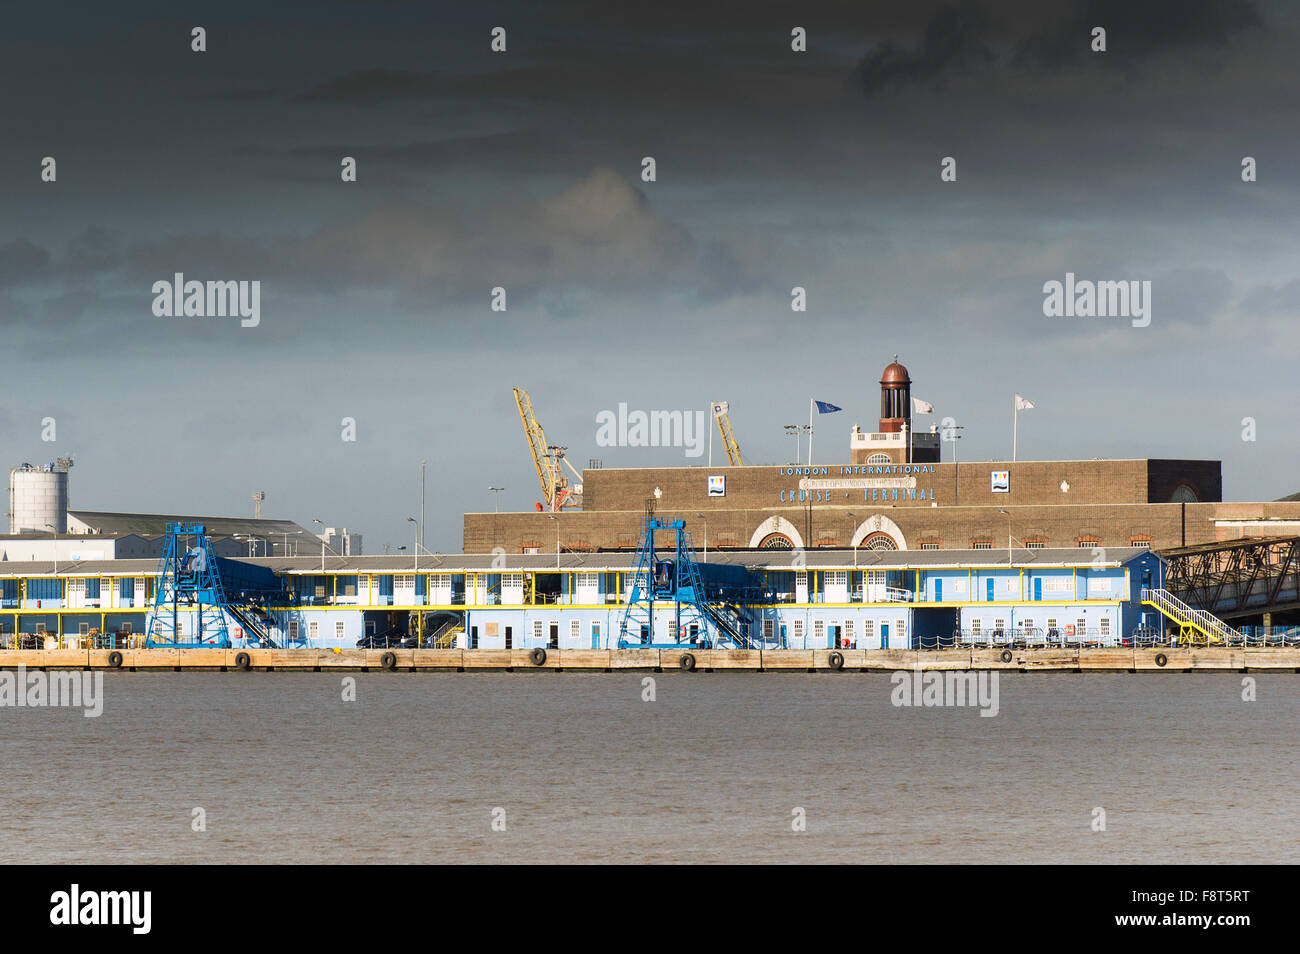 The London International Cruise Terminal on the Essex side of the River Thames. - Stock Image